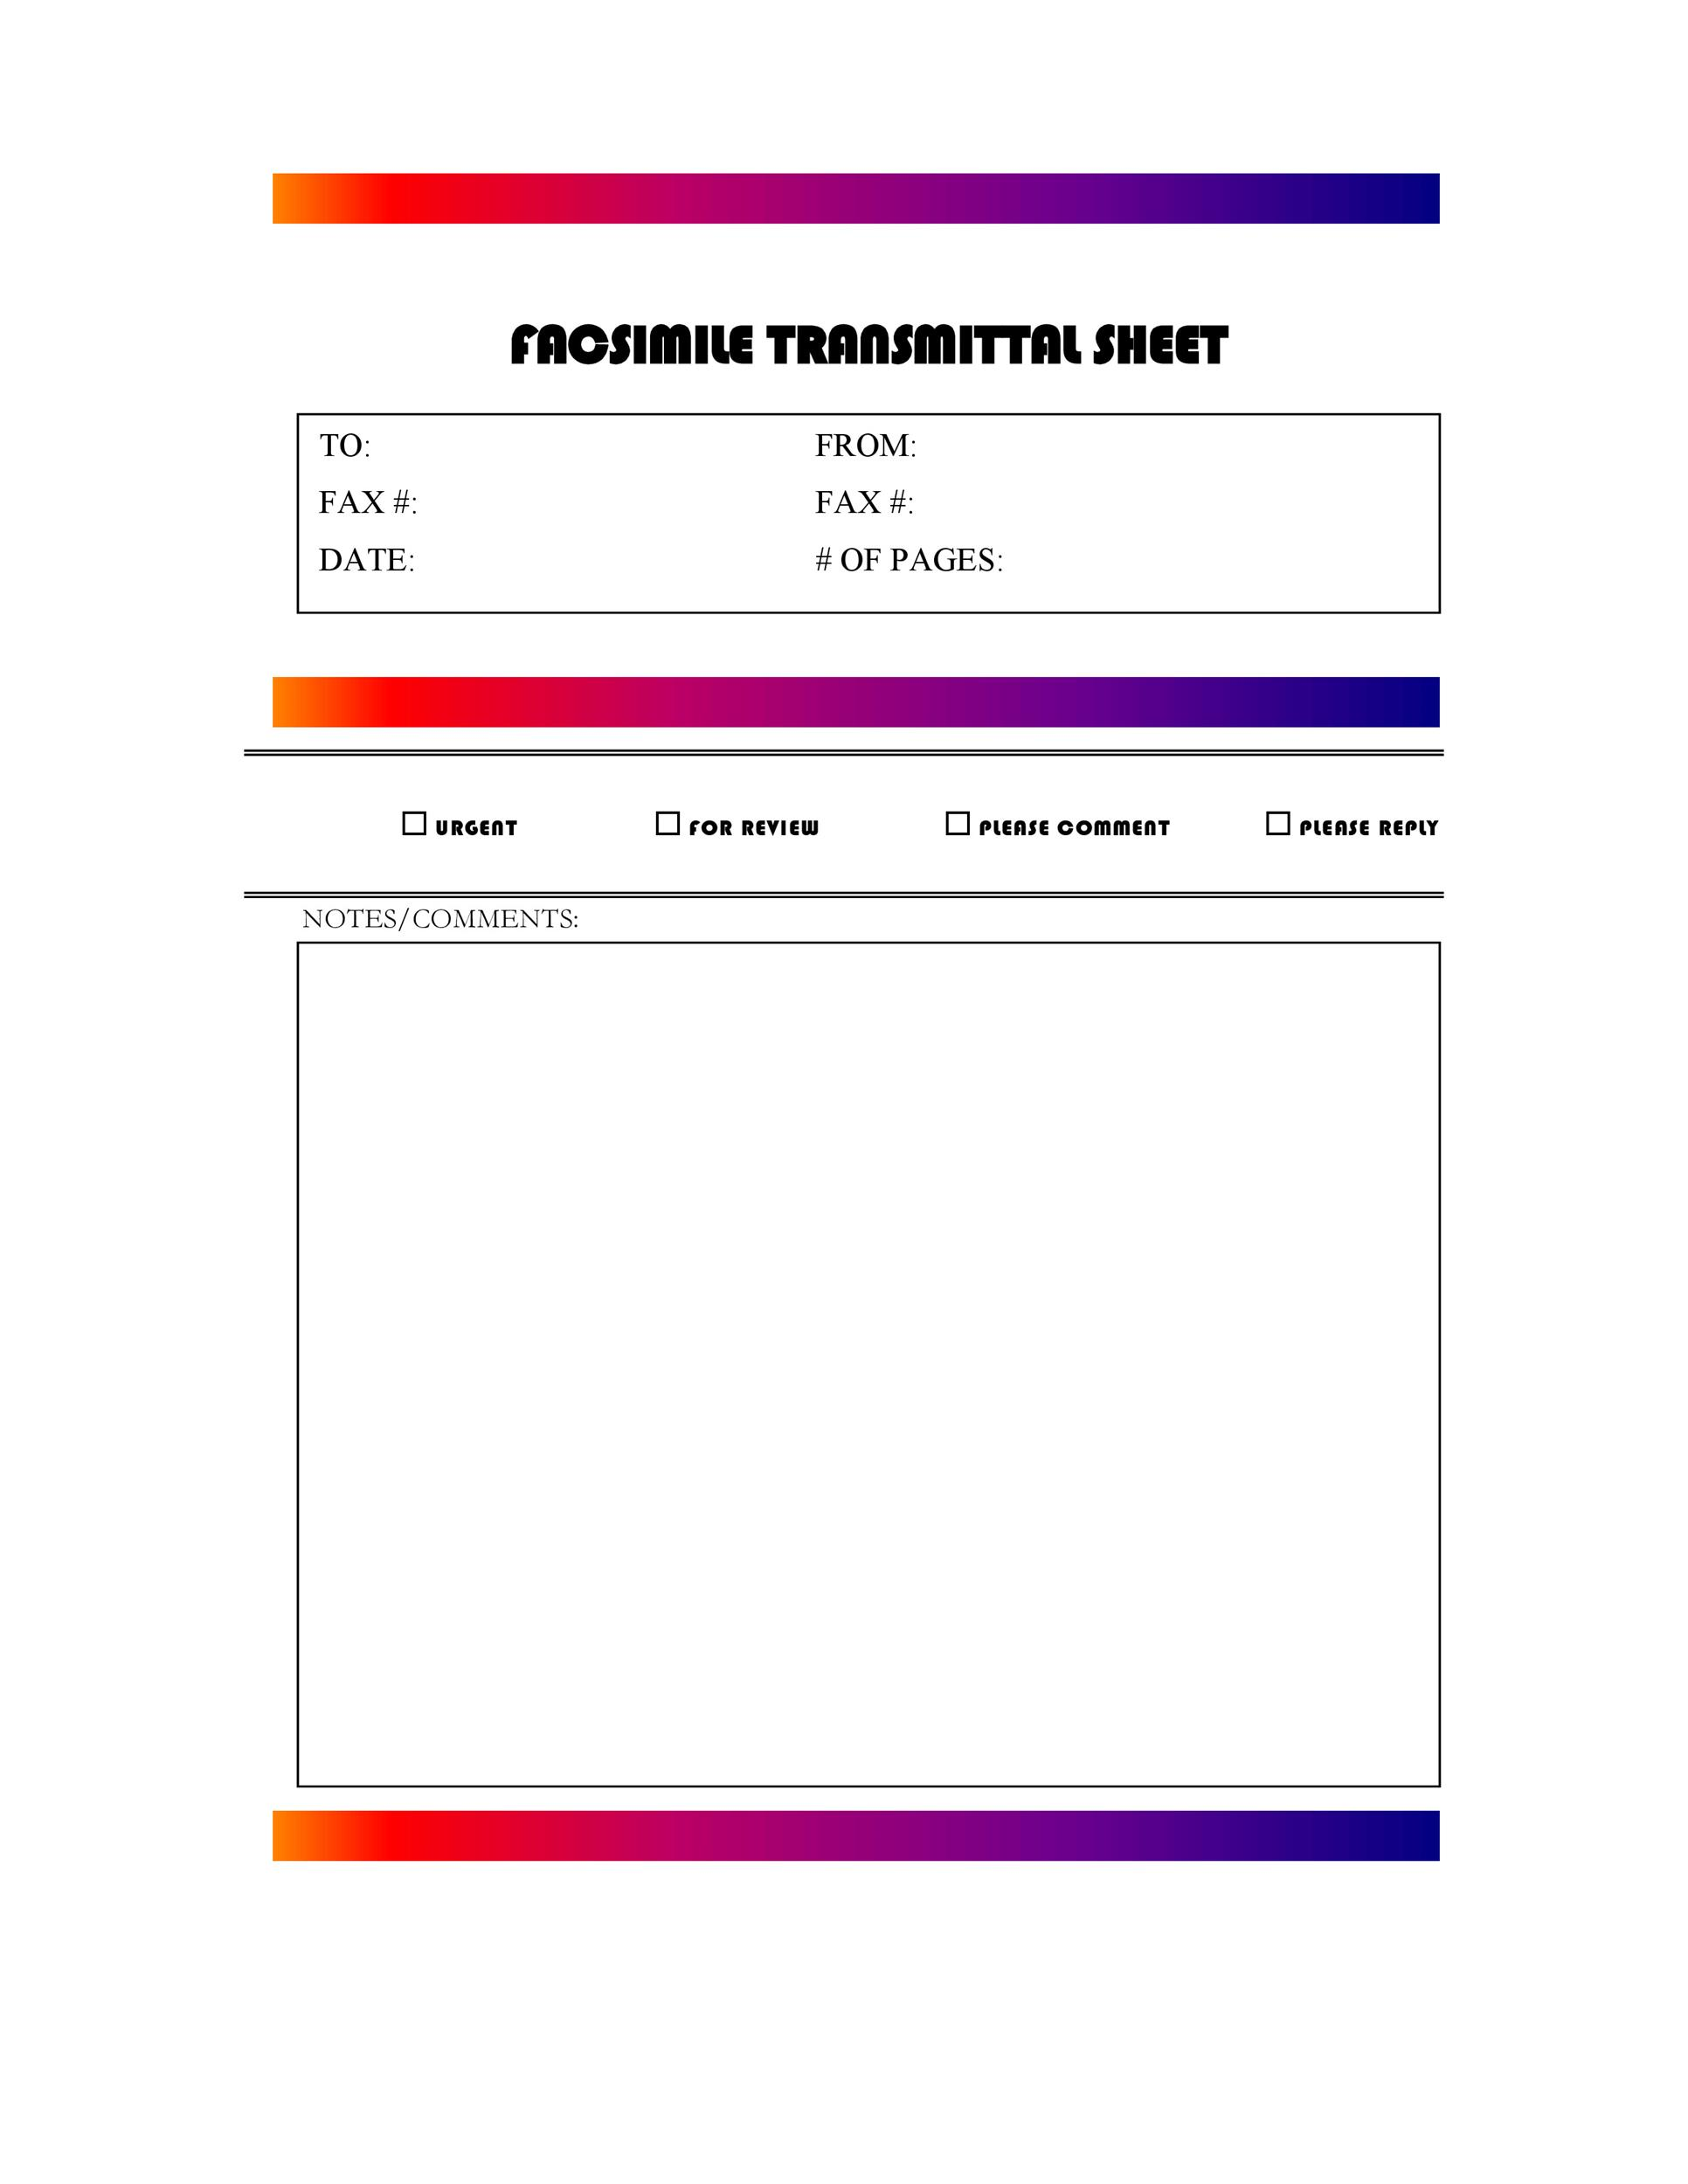 40 Printable Fax Cover Sheet Templates - Template Lab - fax cover sheet download